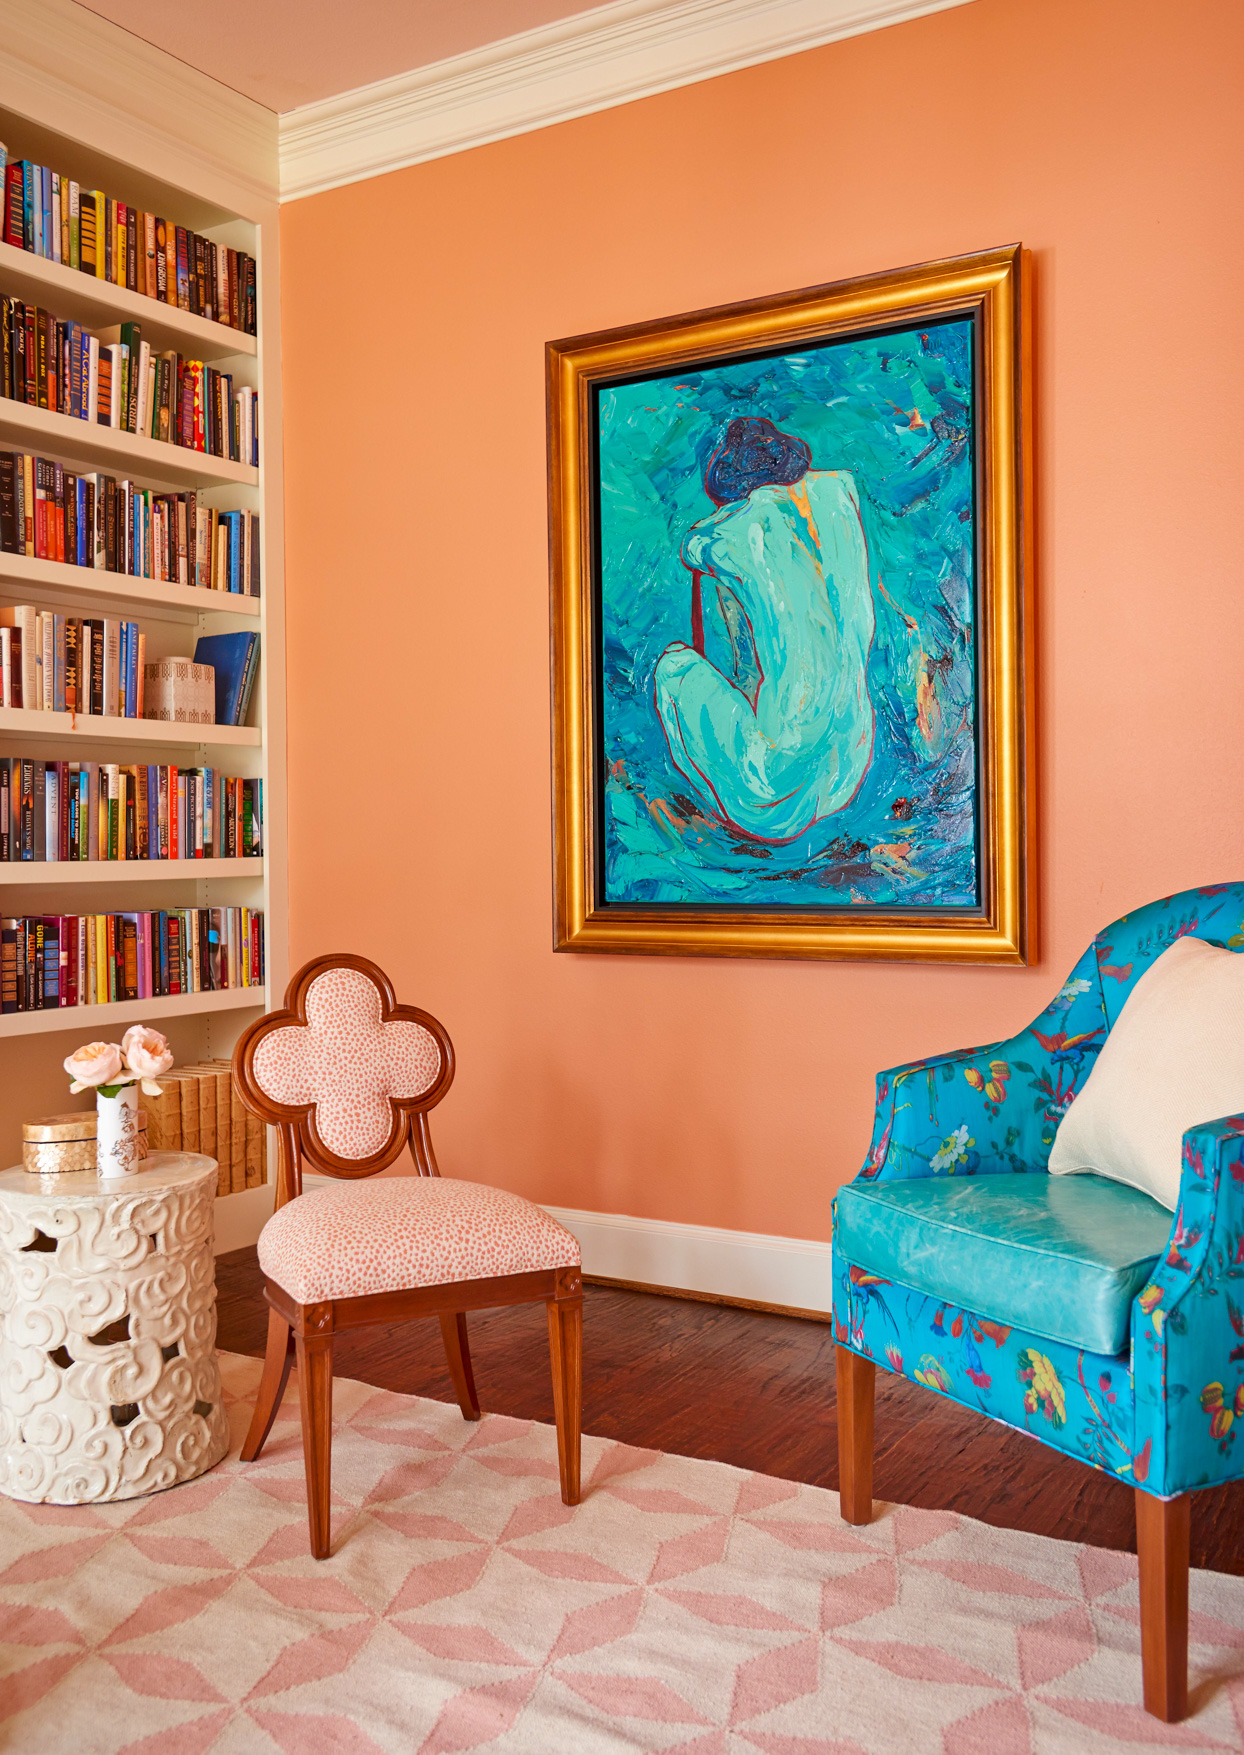 orange sitting room with blue painting and chair